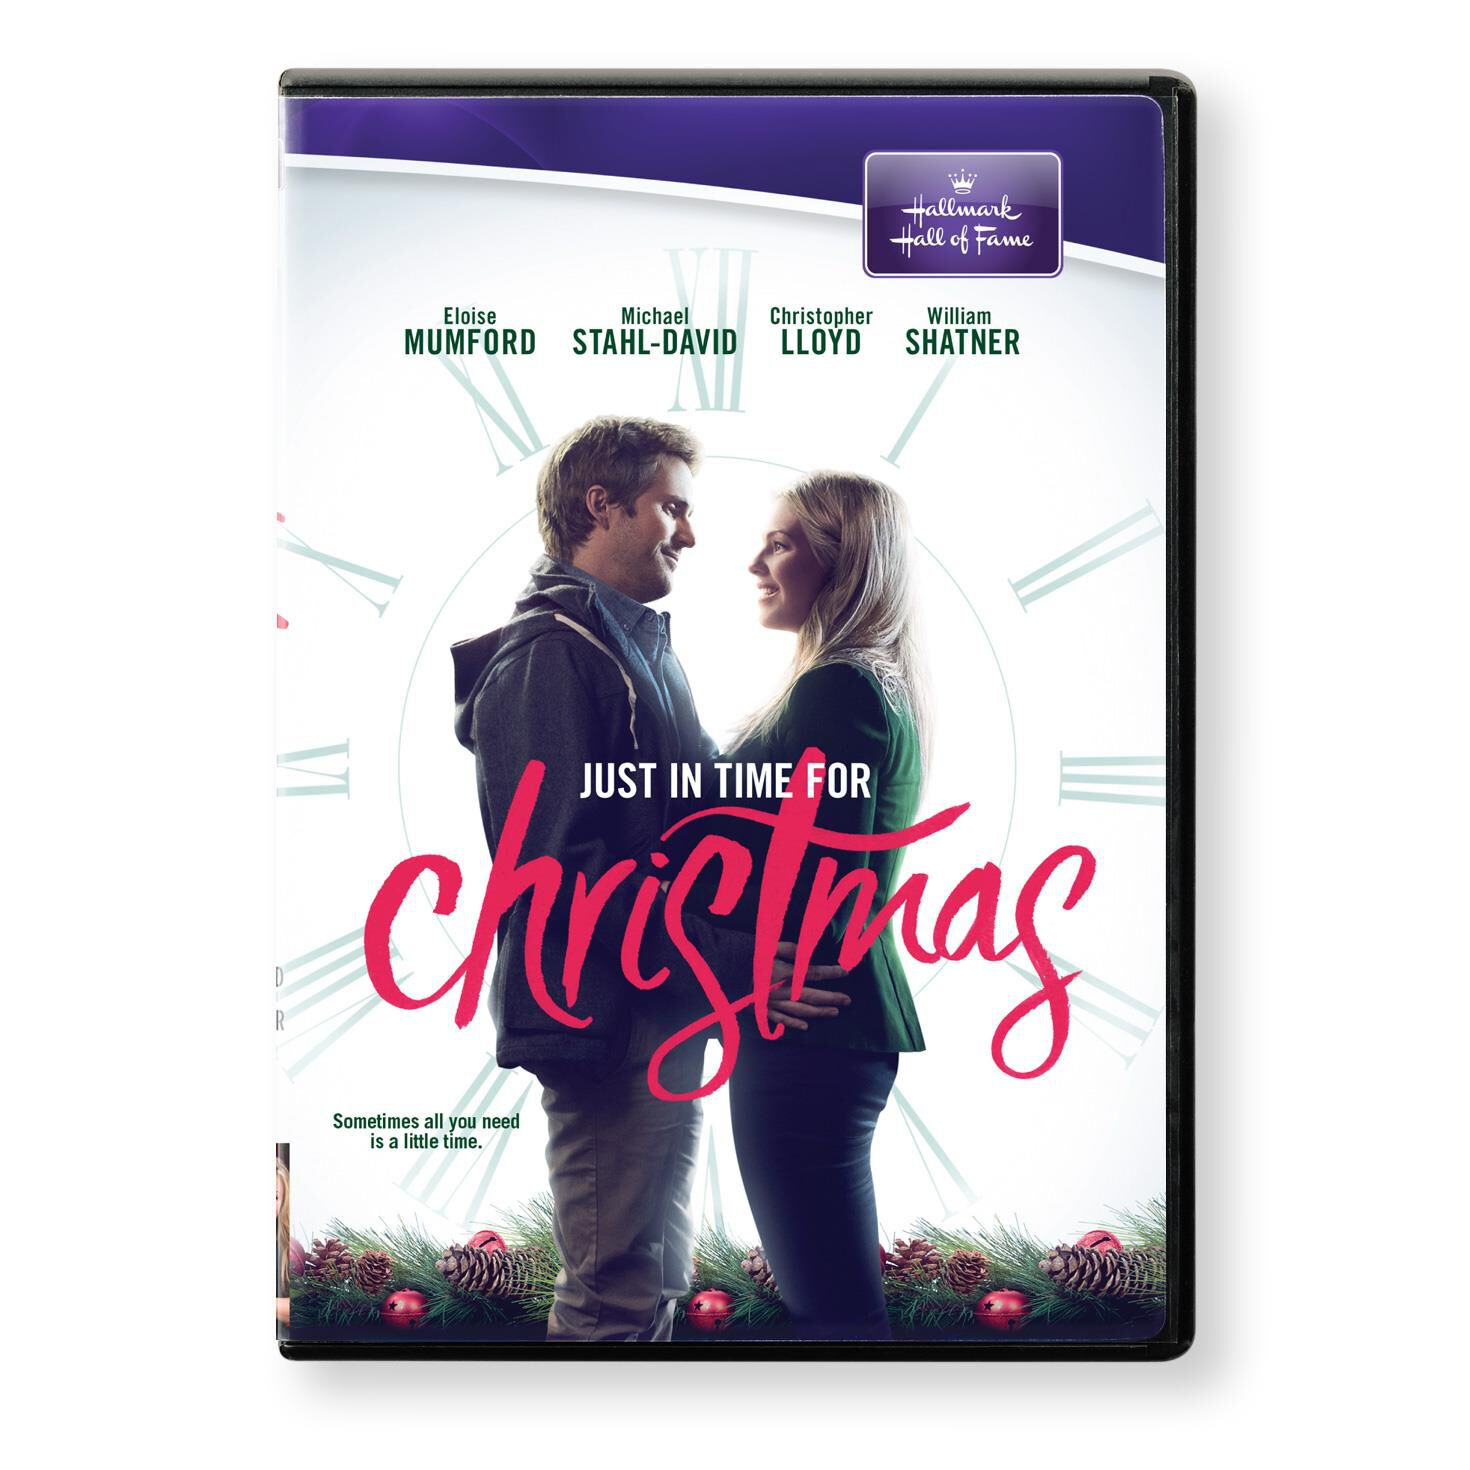 Just in Time for Christmas DVD - Hallmark Hall of Fame - Hallmark